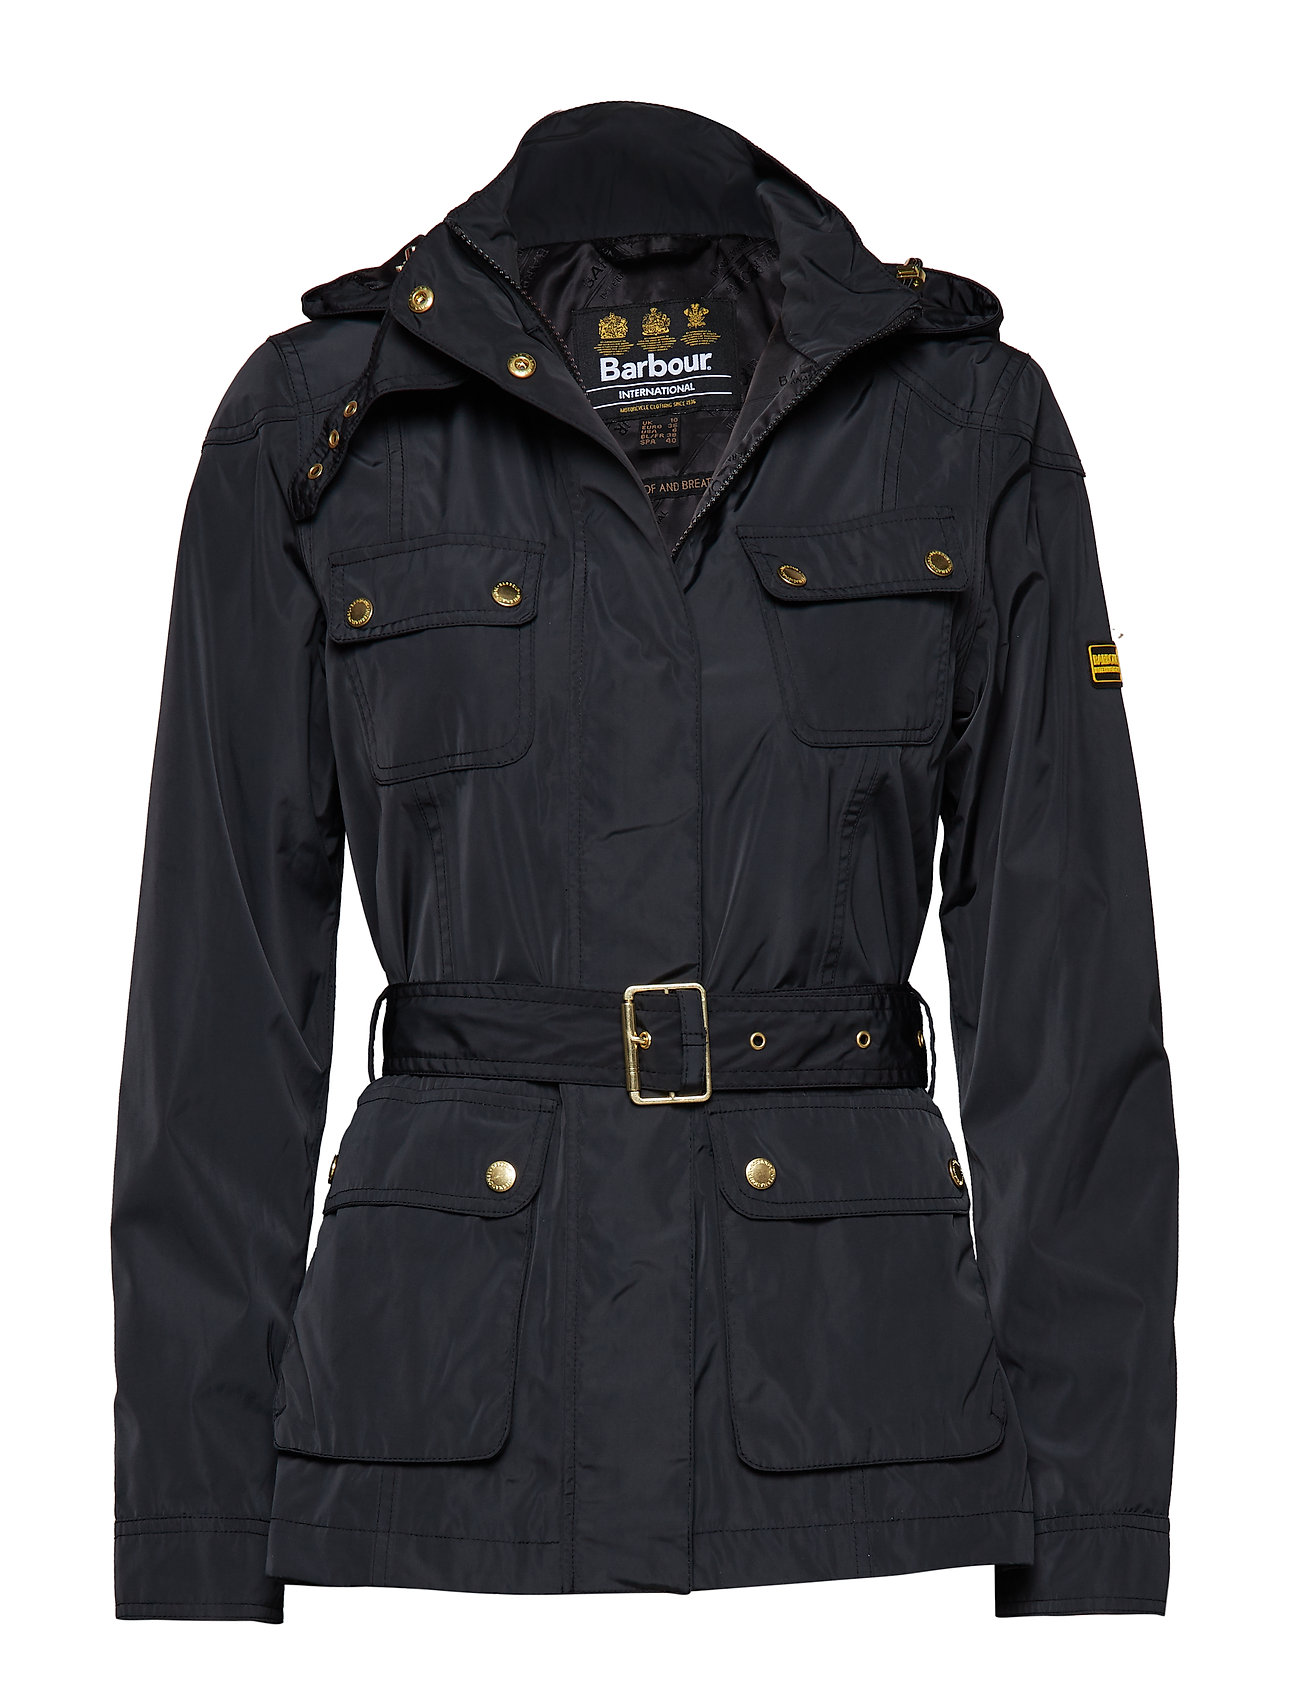 Barbour B.Intl Division Jacket